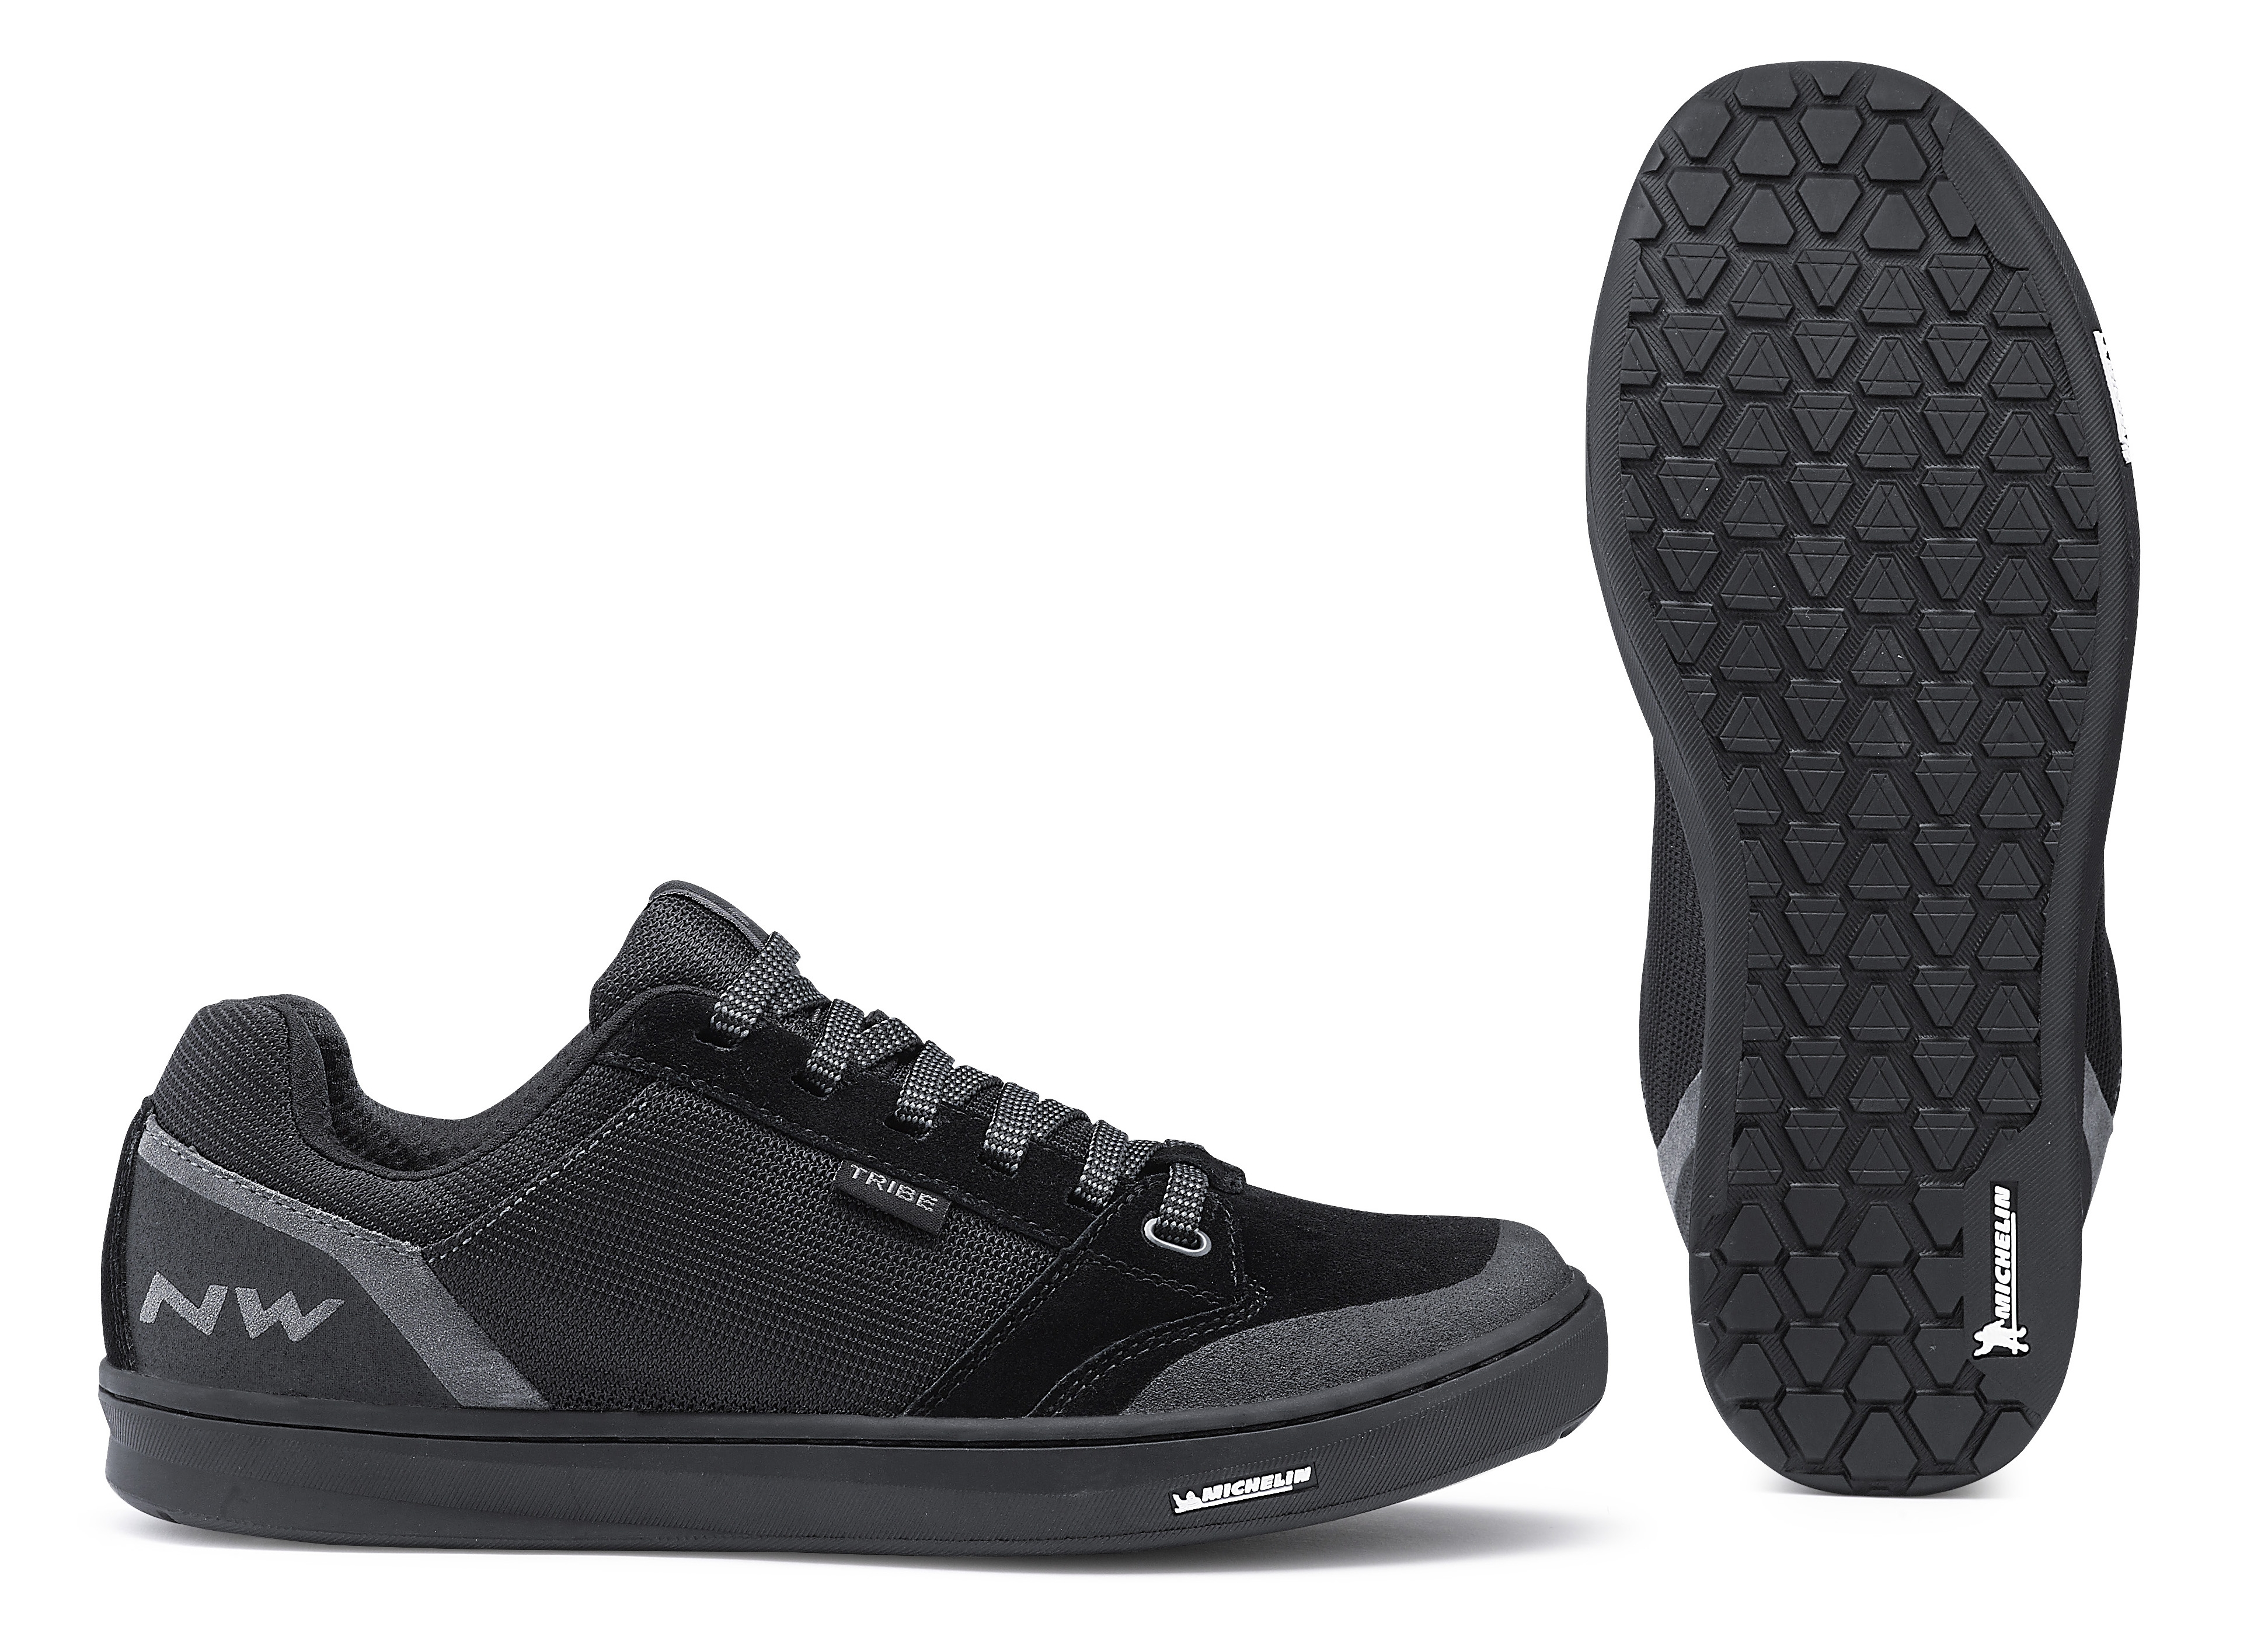 Best price Northwave Bike shoes Male Tribe | Italy2us.com